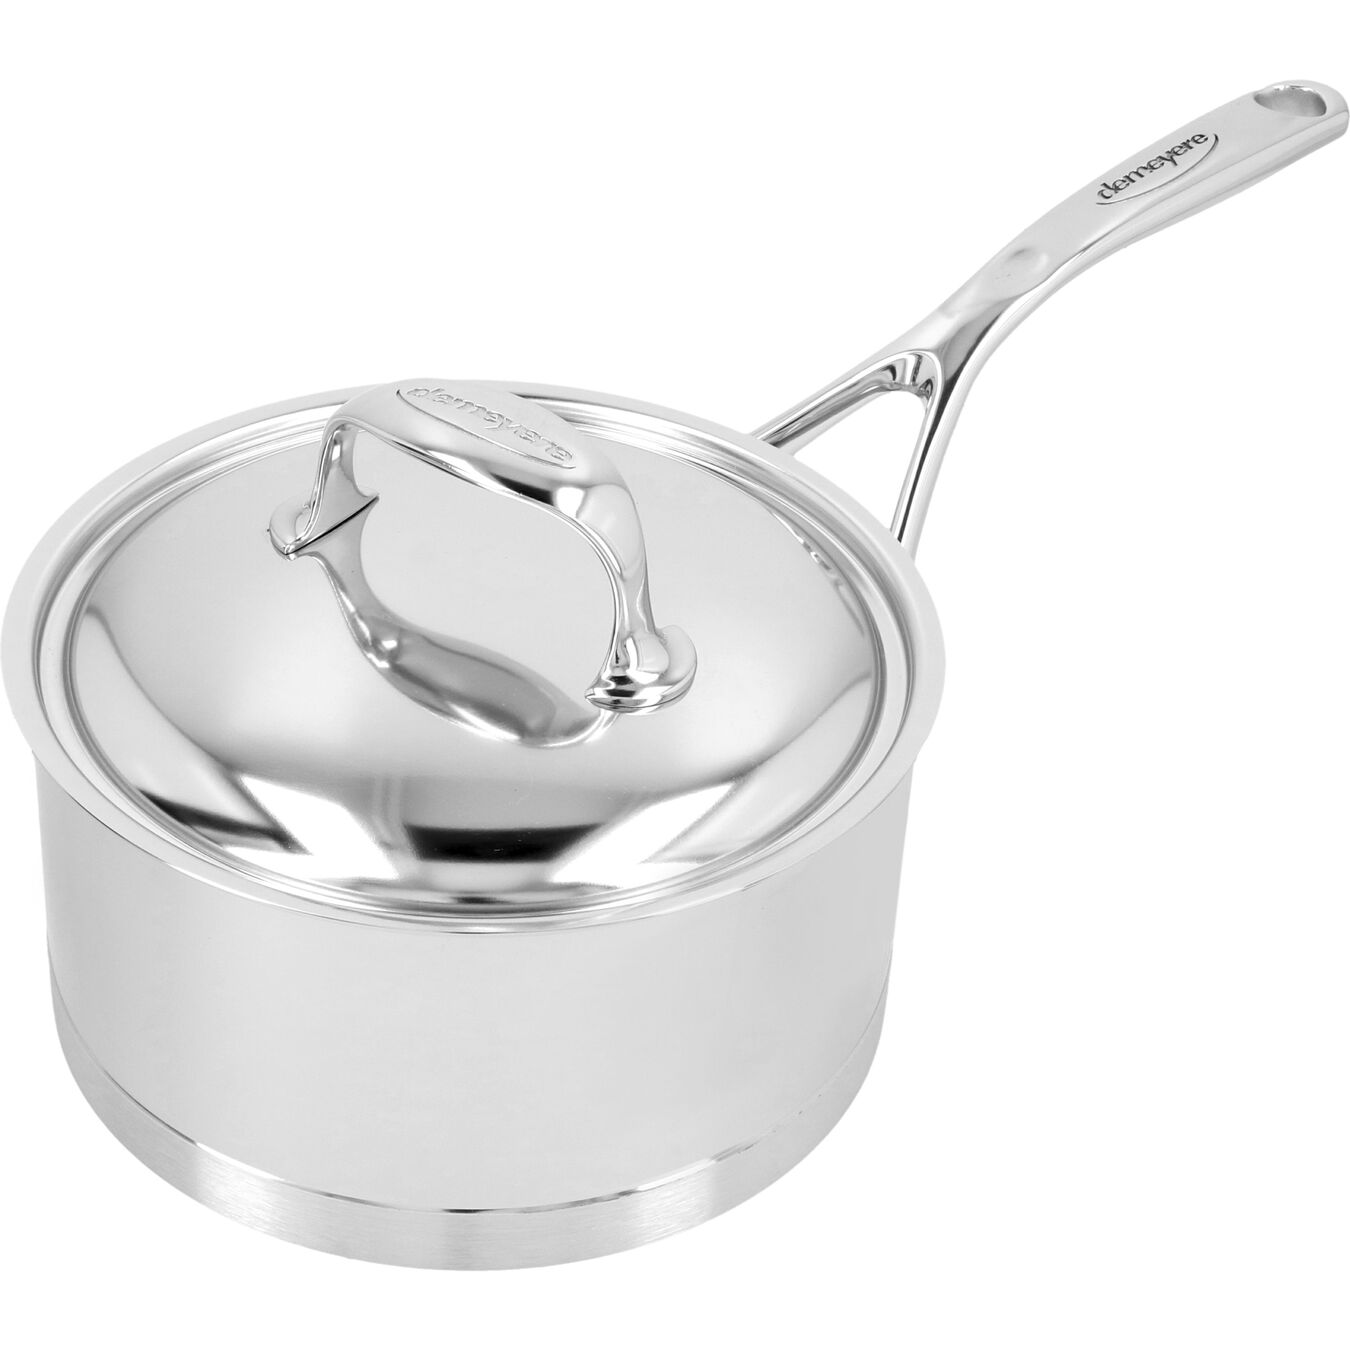 2.25 qt Sauce pan with lid, 18/10 Stainless Steel ,,large 3